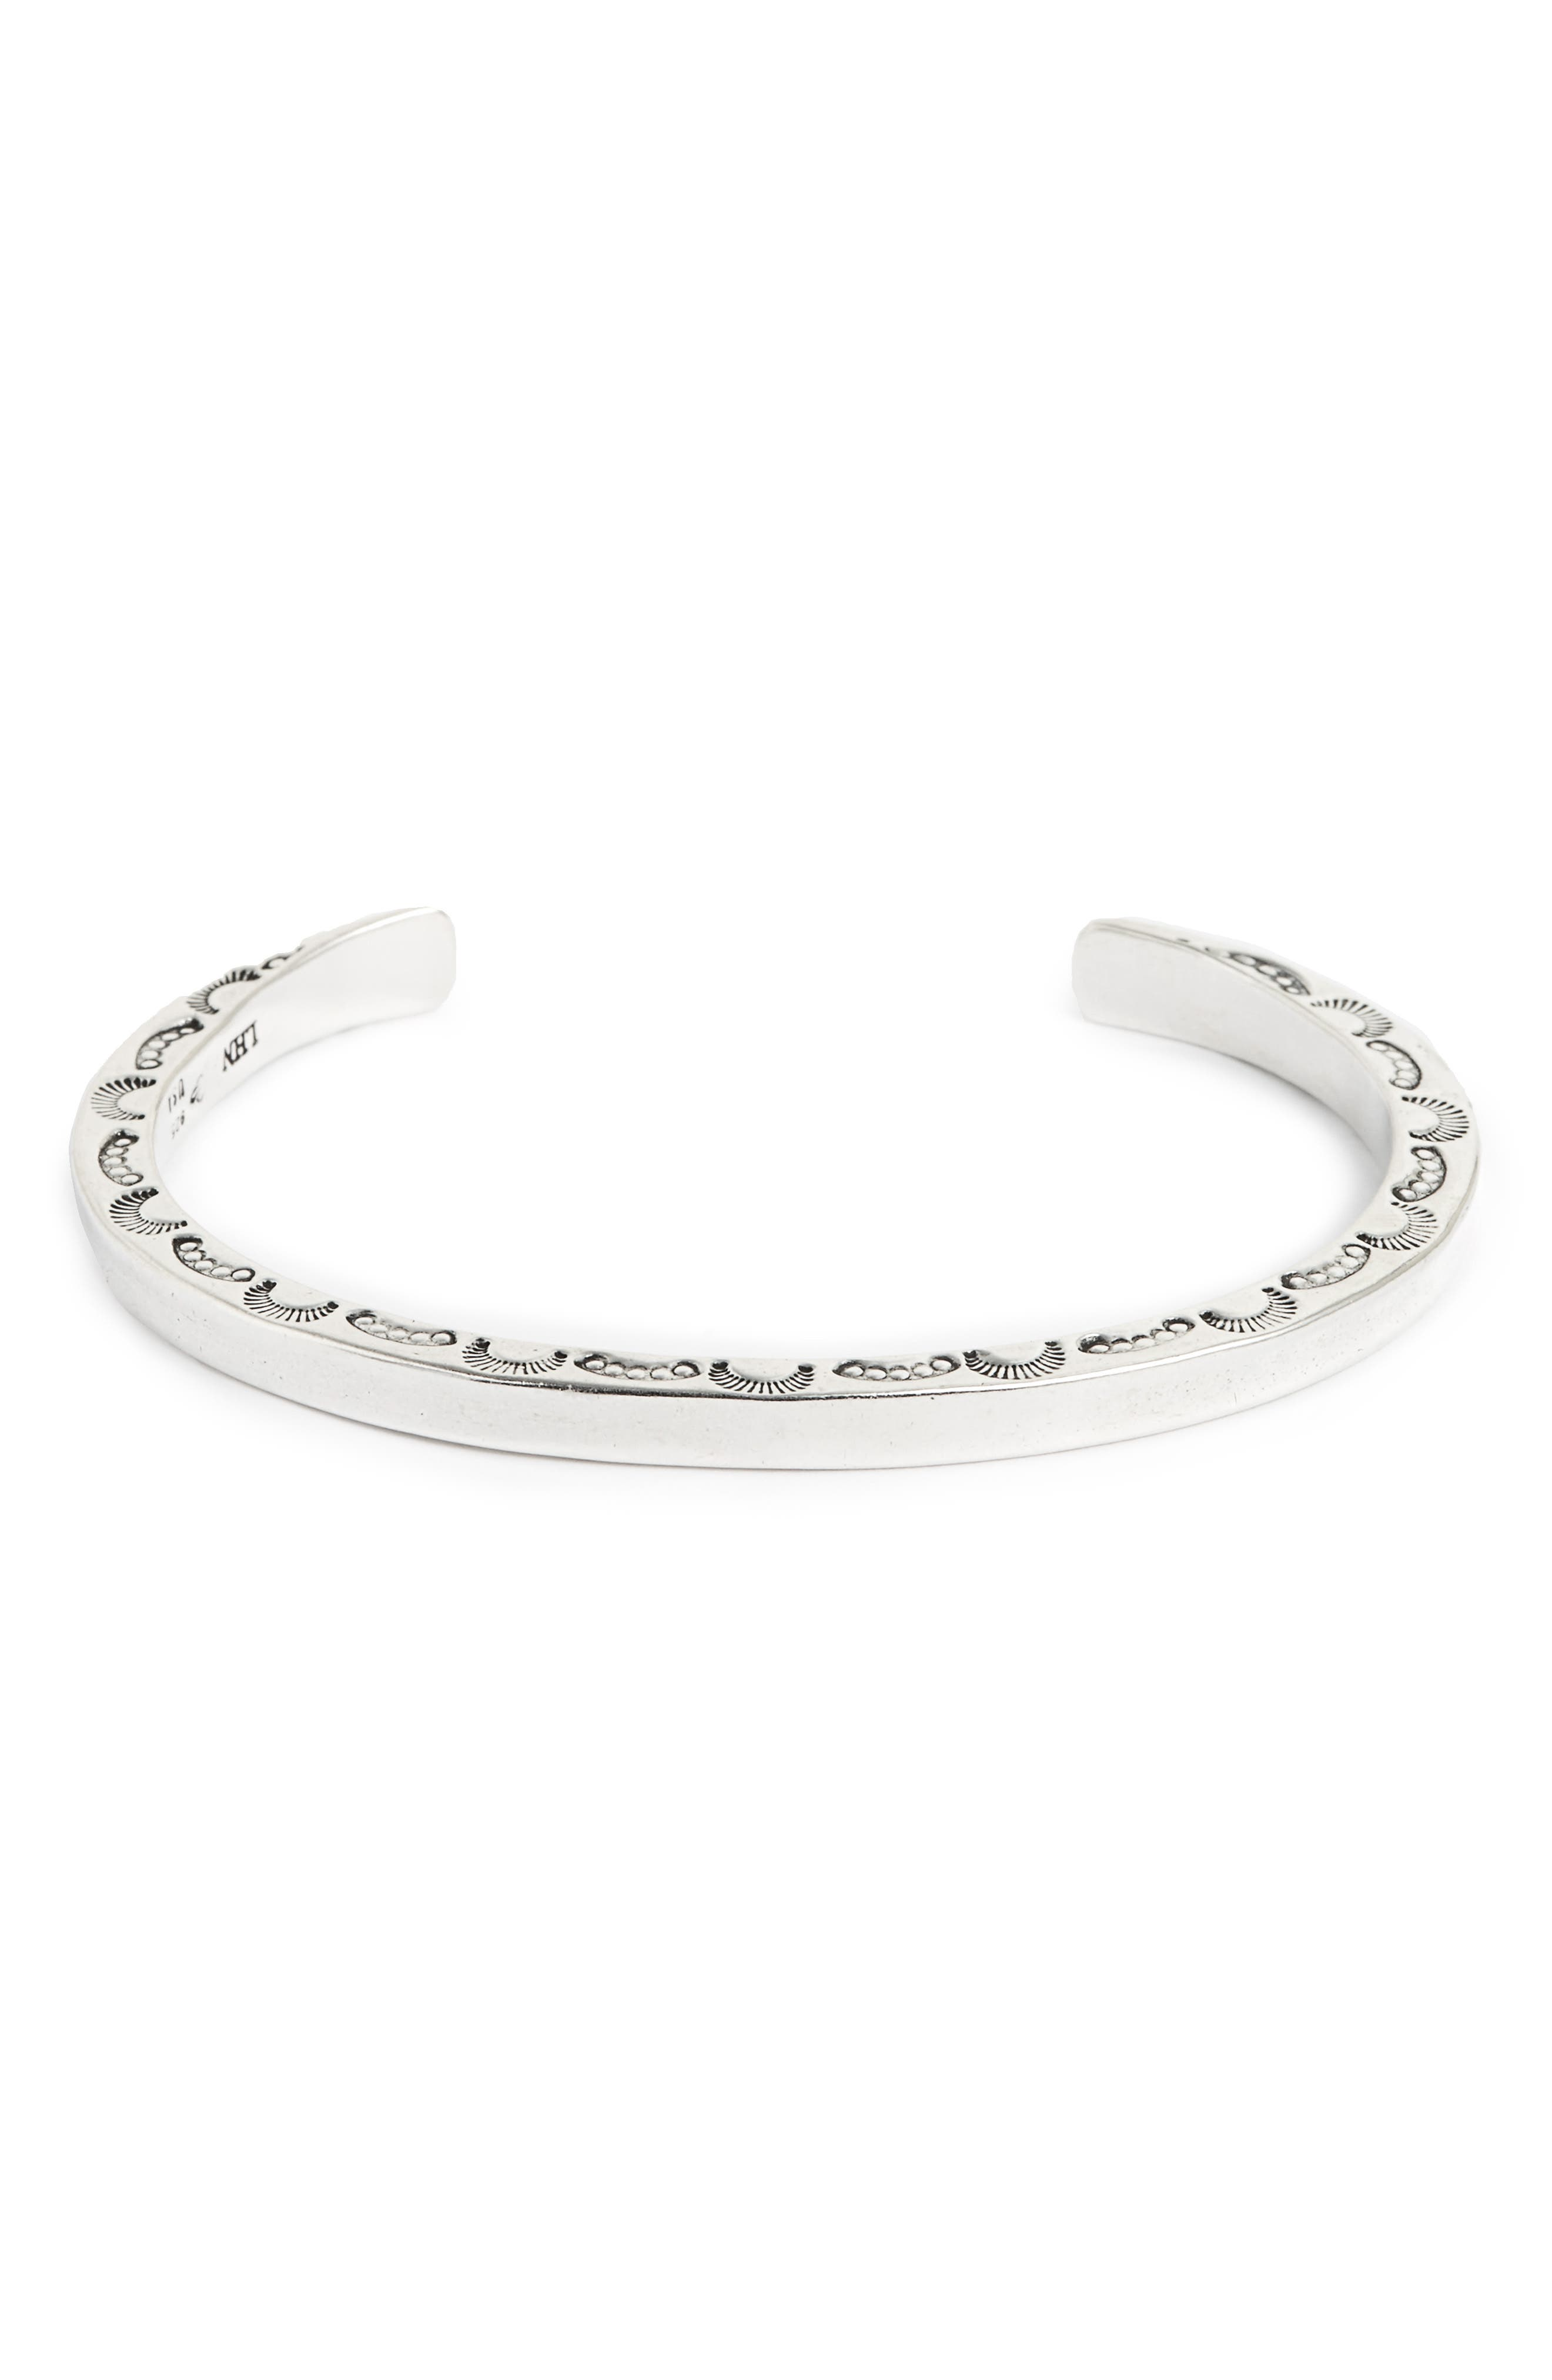 Sterling Silver Cuff Bracelet,                             Main thumbnail 1, color,